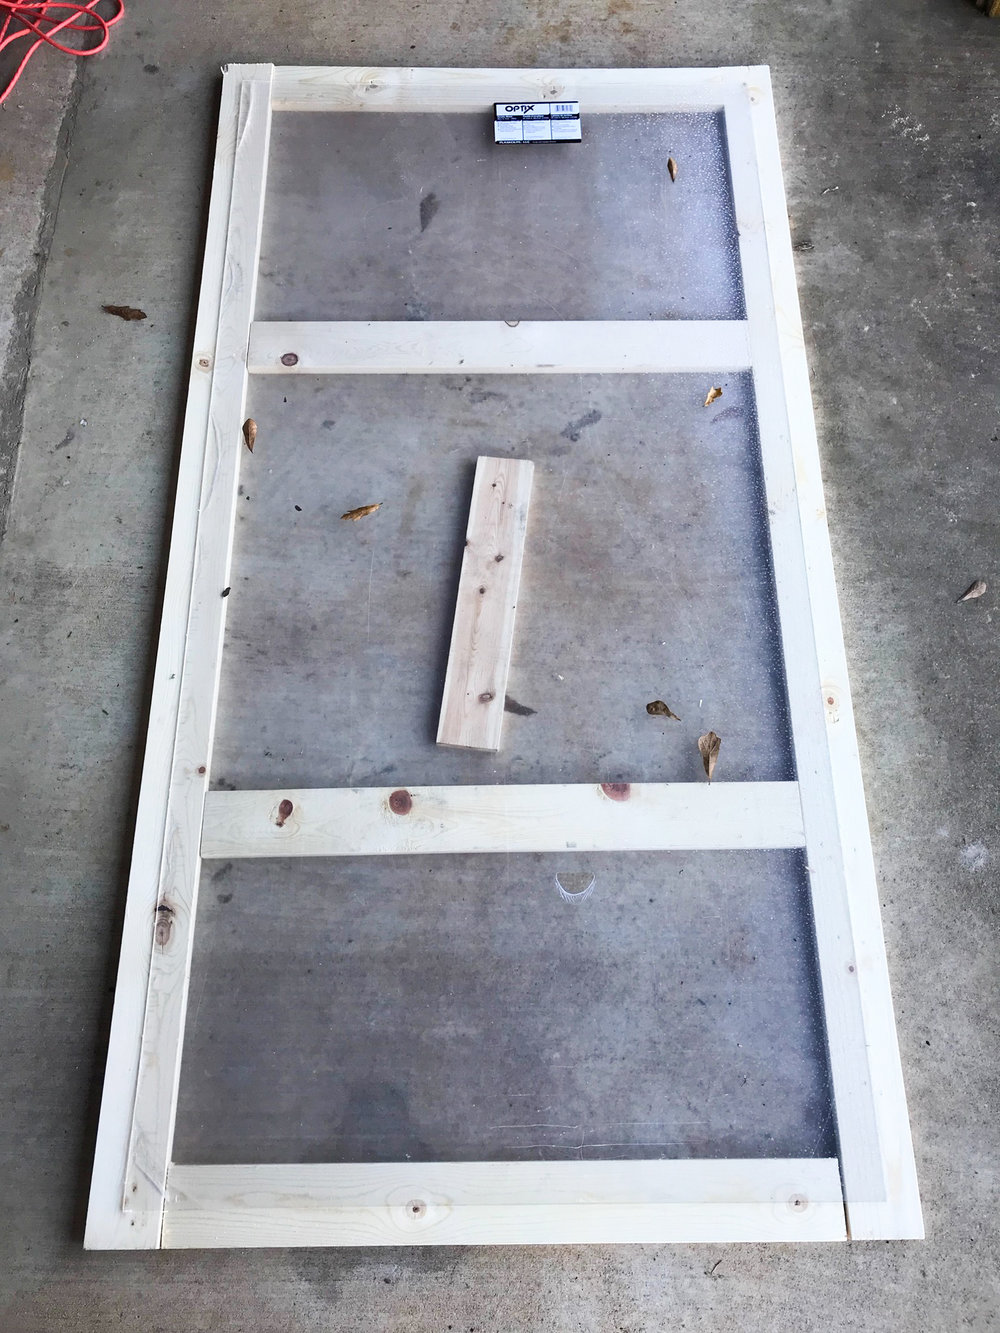 First step before building the box was to build the wooden frame to the piece of plexiglass to create a light, the name of the pane of glass on a cold frame. You want to make sure that the light fits the box snug.